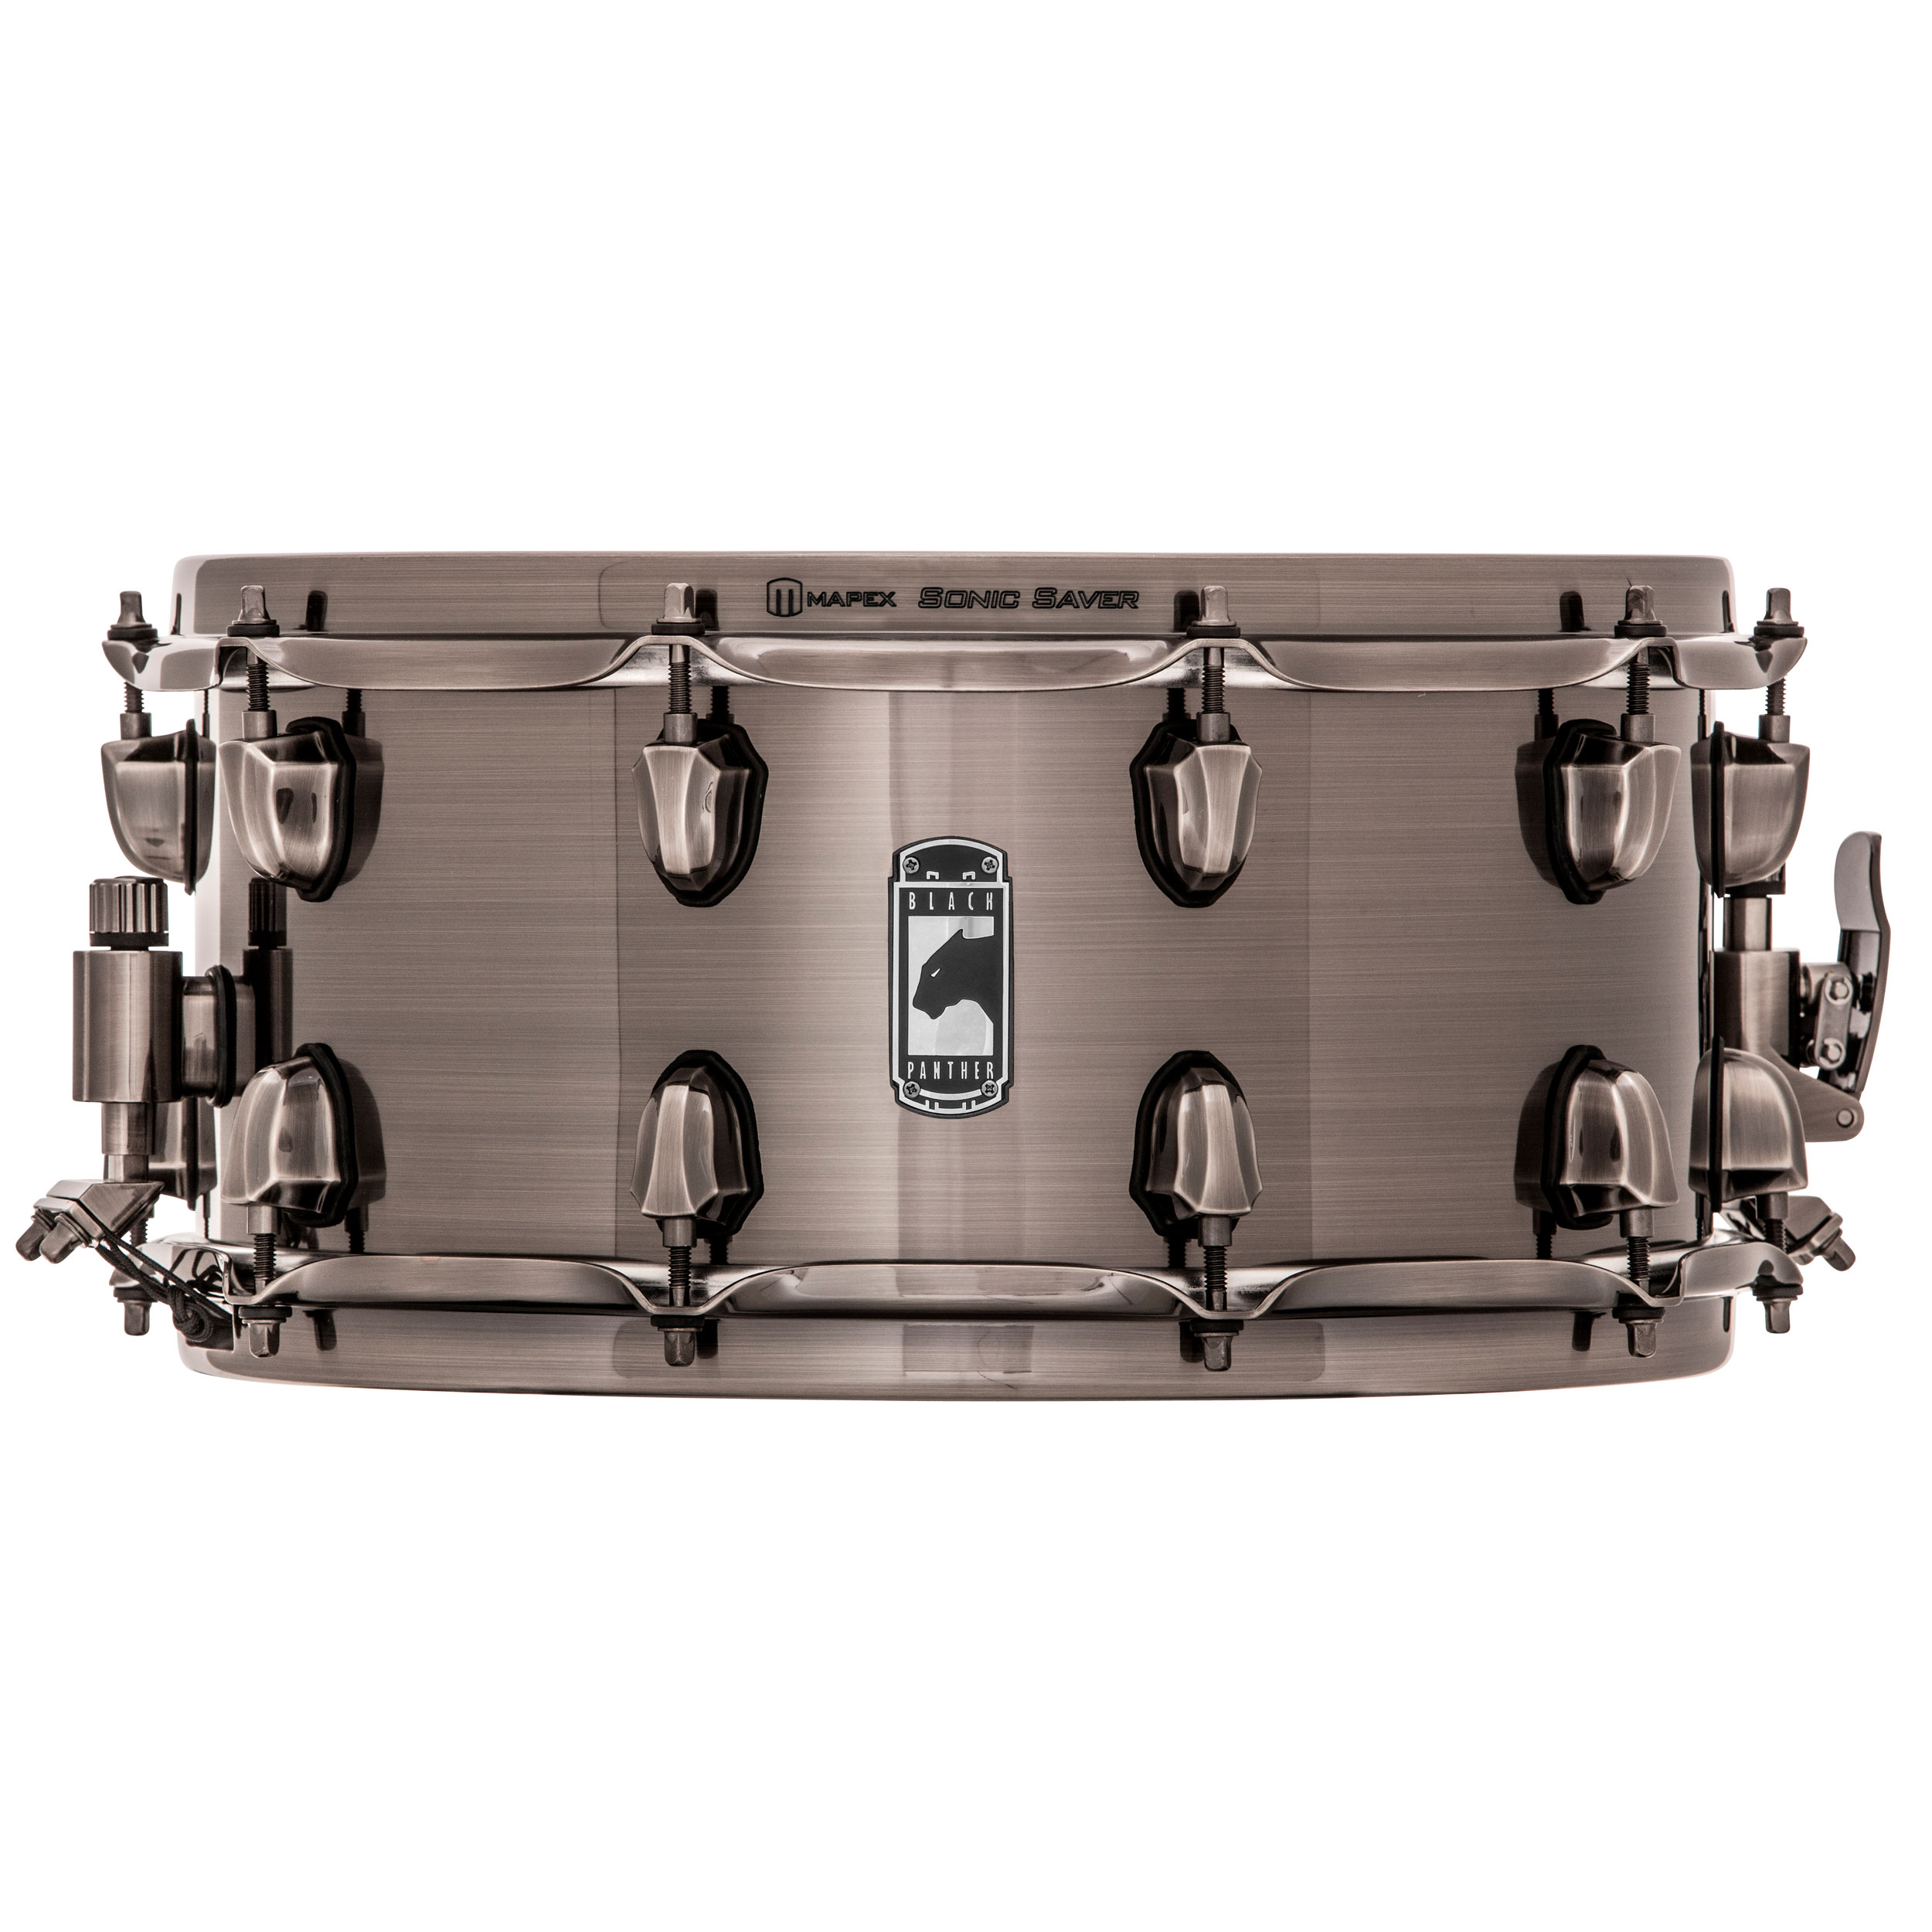 "Mapex 14"" x 6.5"" Black Panther Machete Snare Drum"